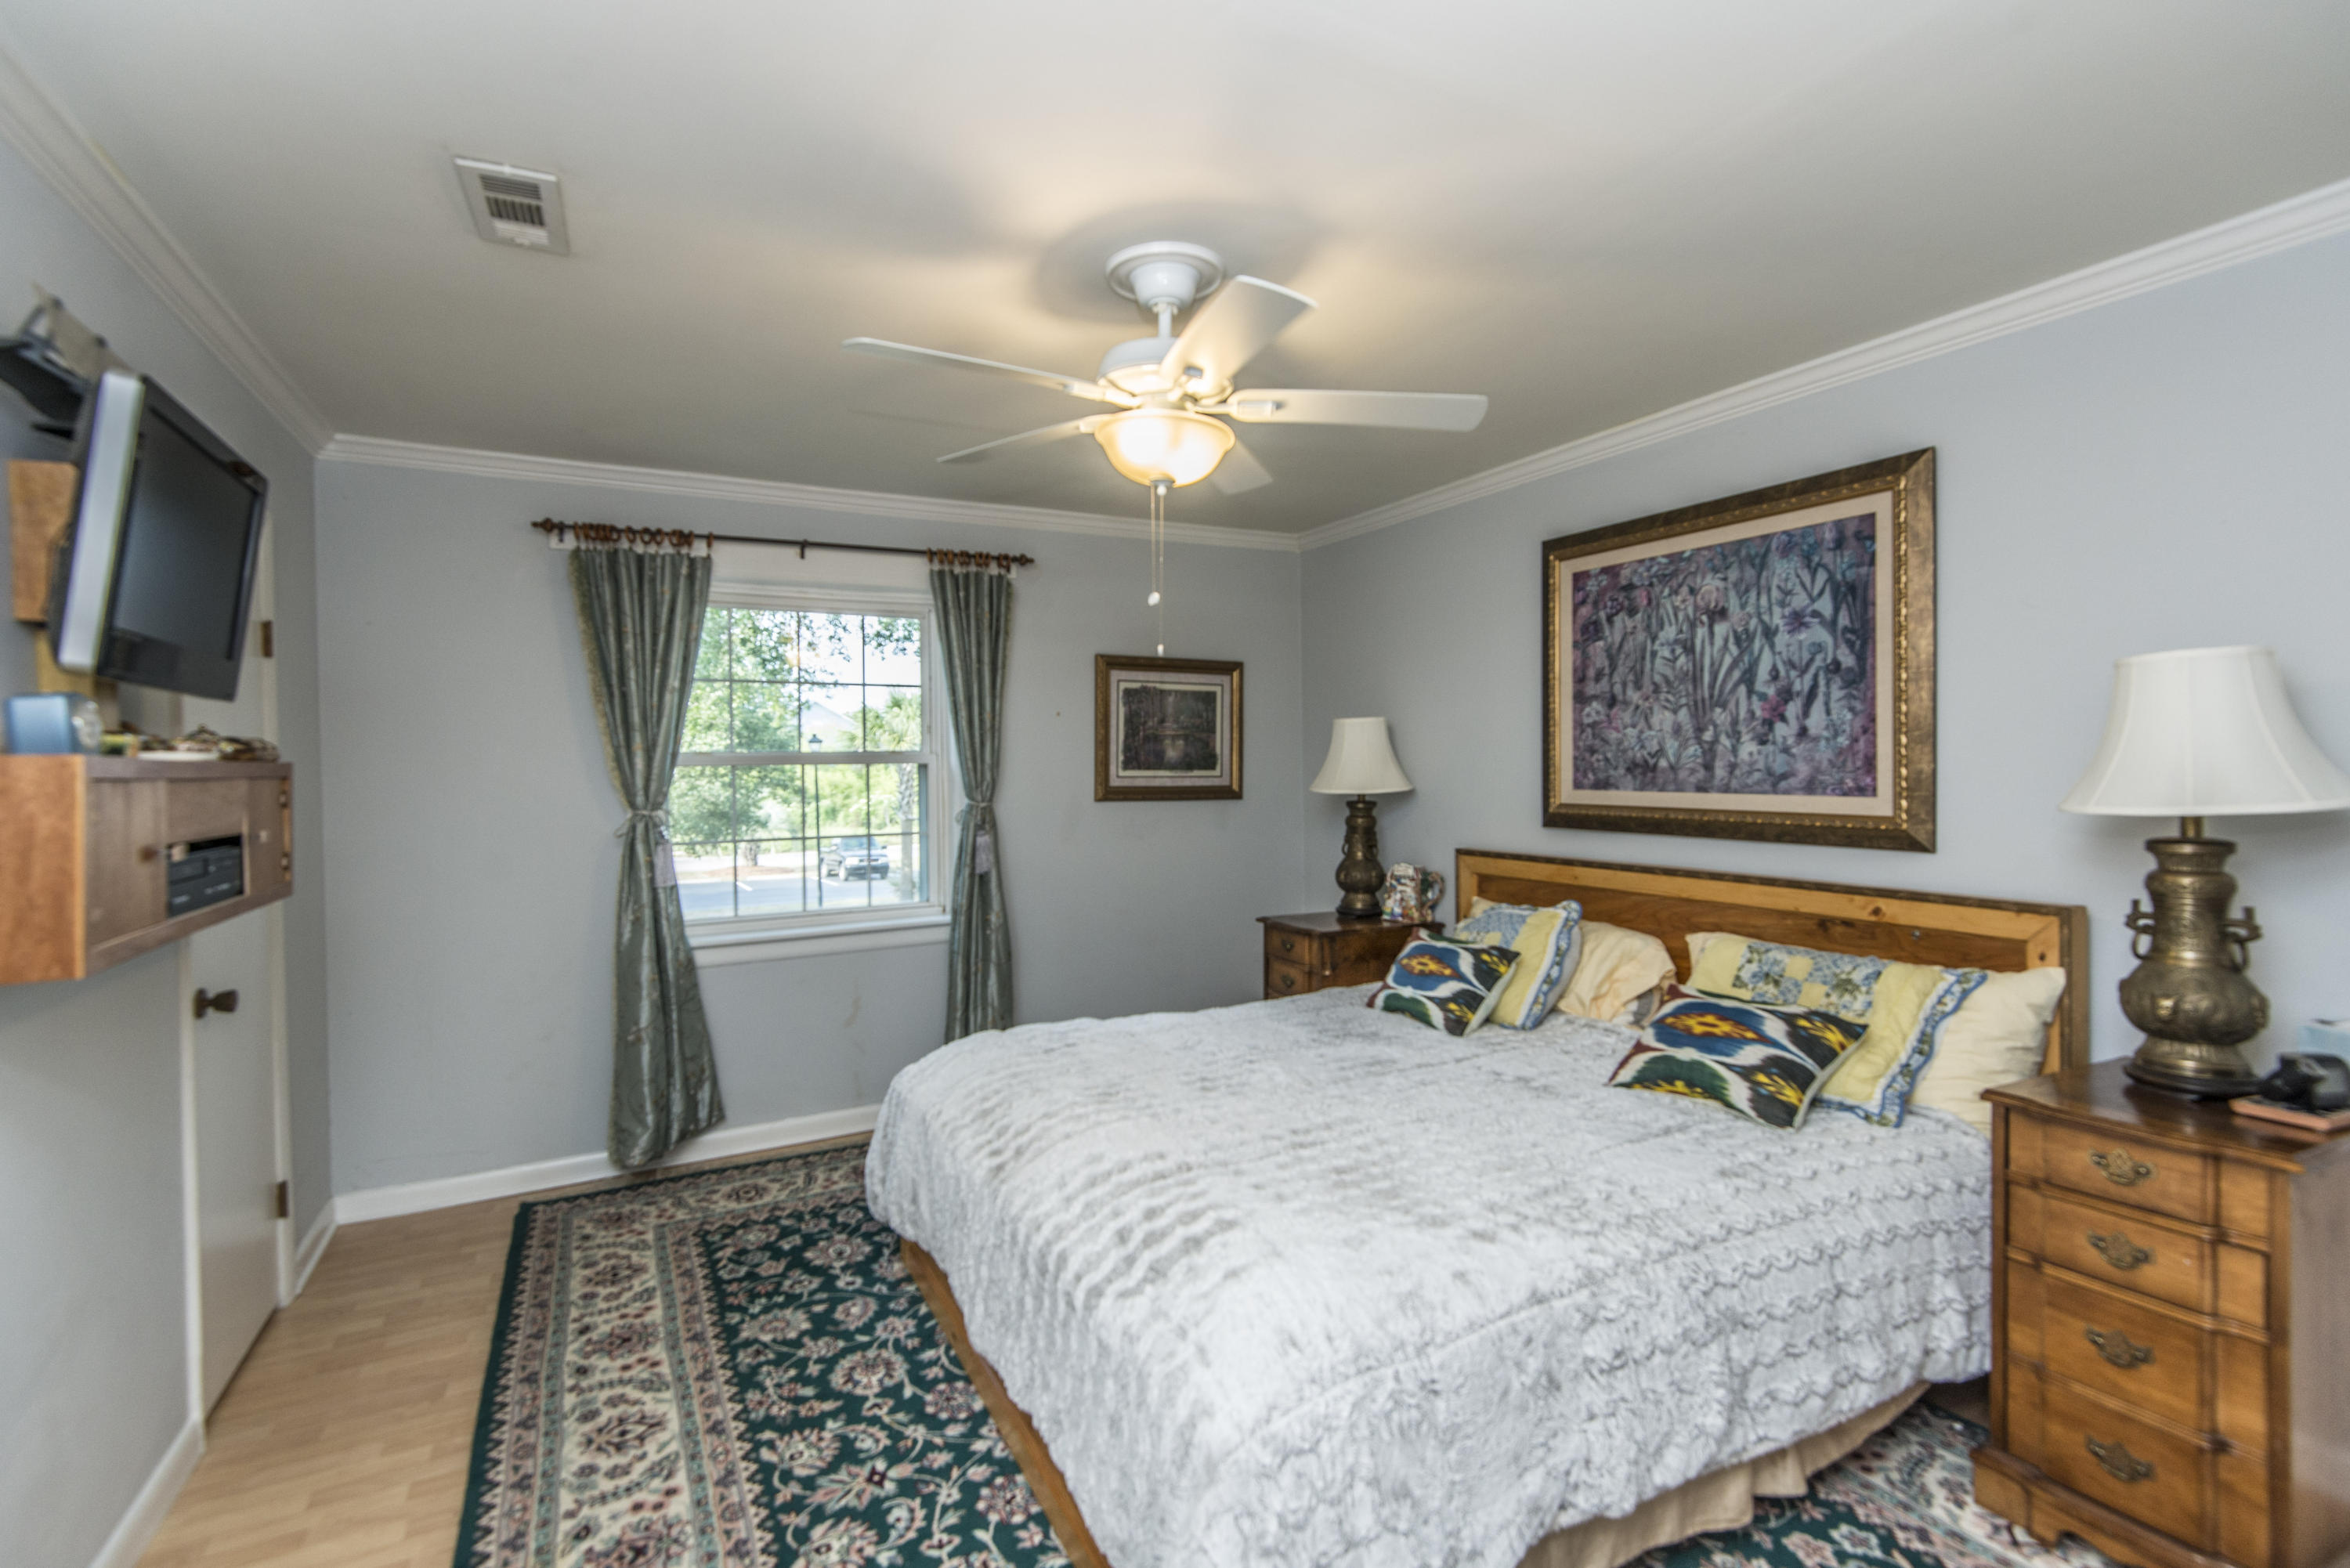 Rivers Point Row Homes For Sale - 21 Rivers Point Row, Charleston, SC - 27